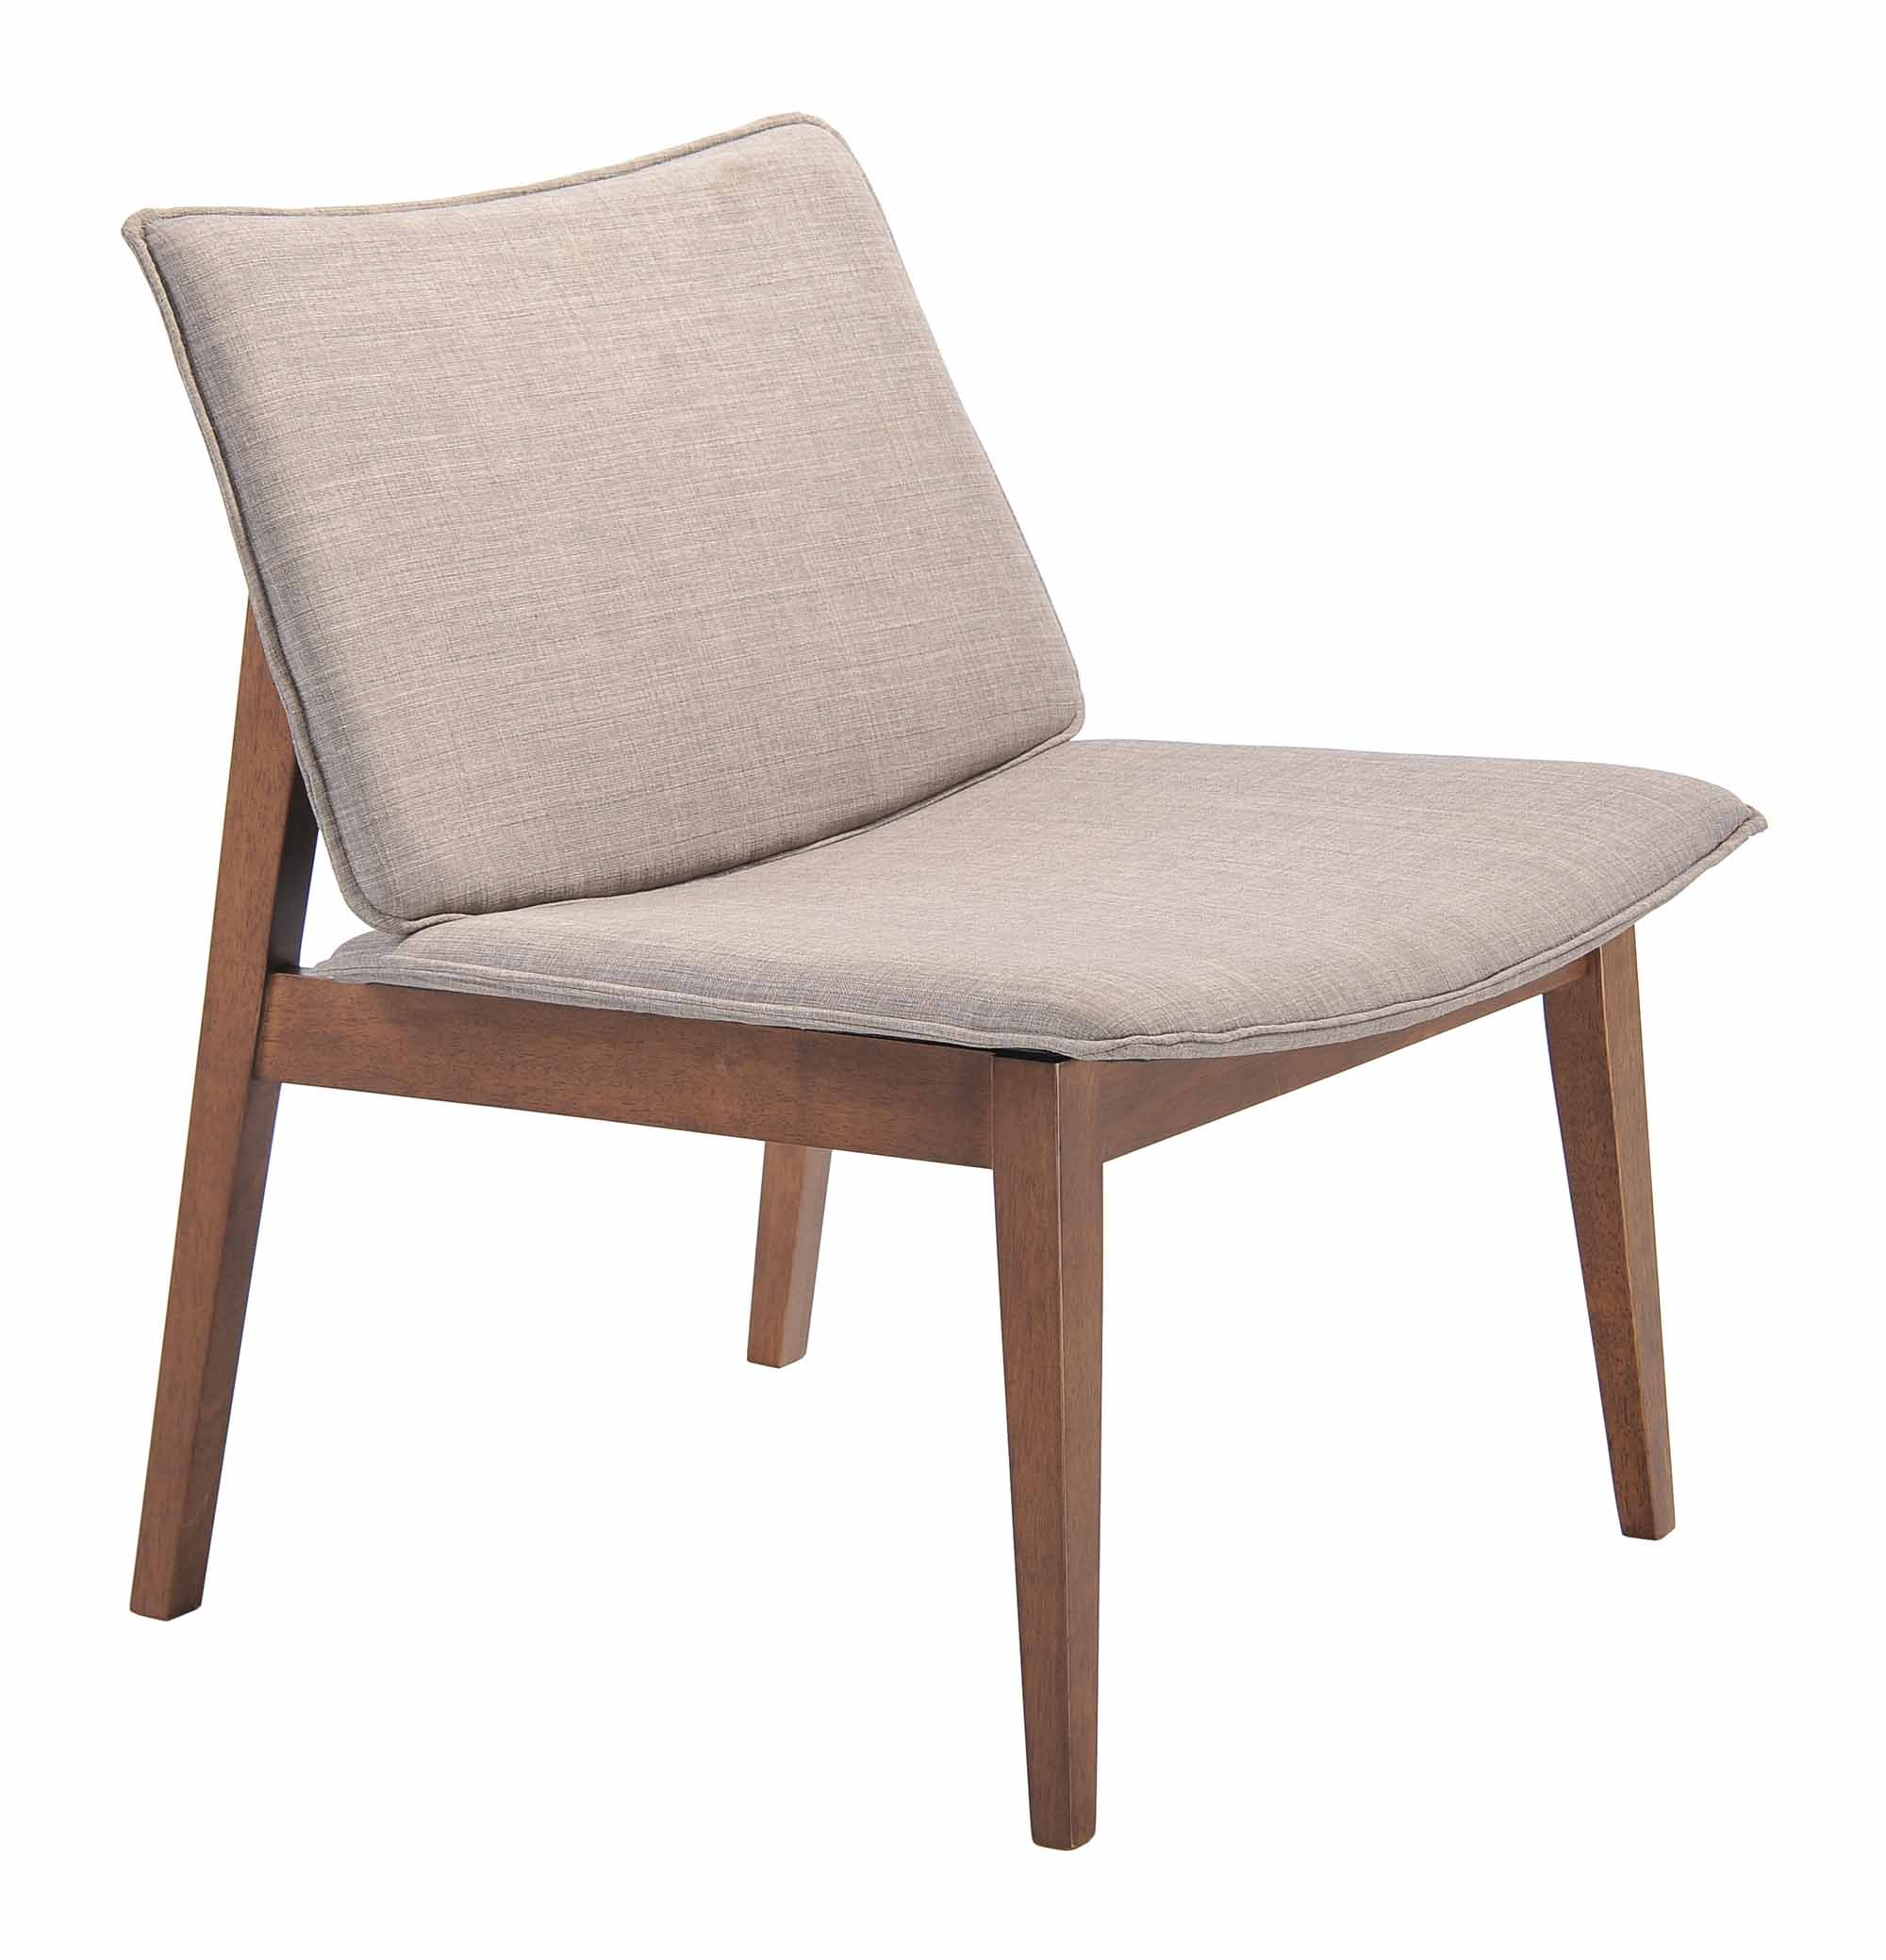 large occasional chairs padded folding with arms little havana chair dove gray set of 2 by zuo